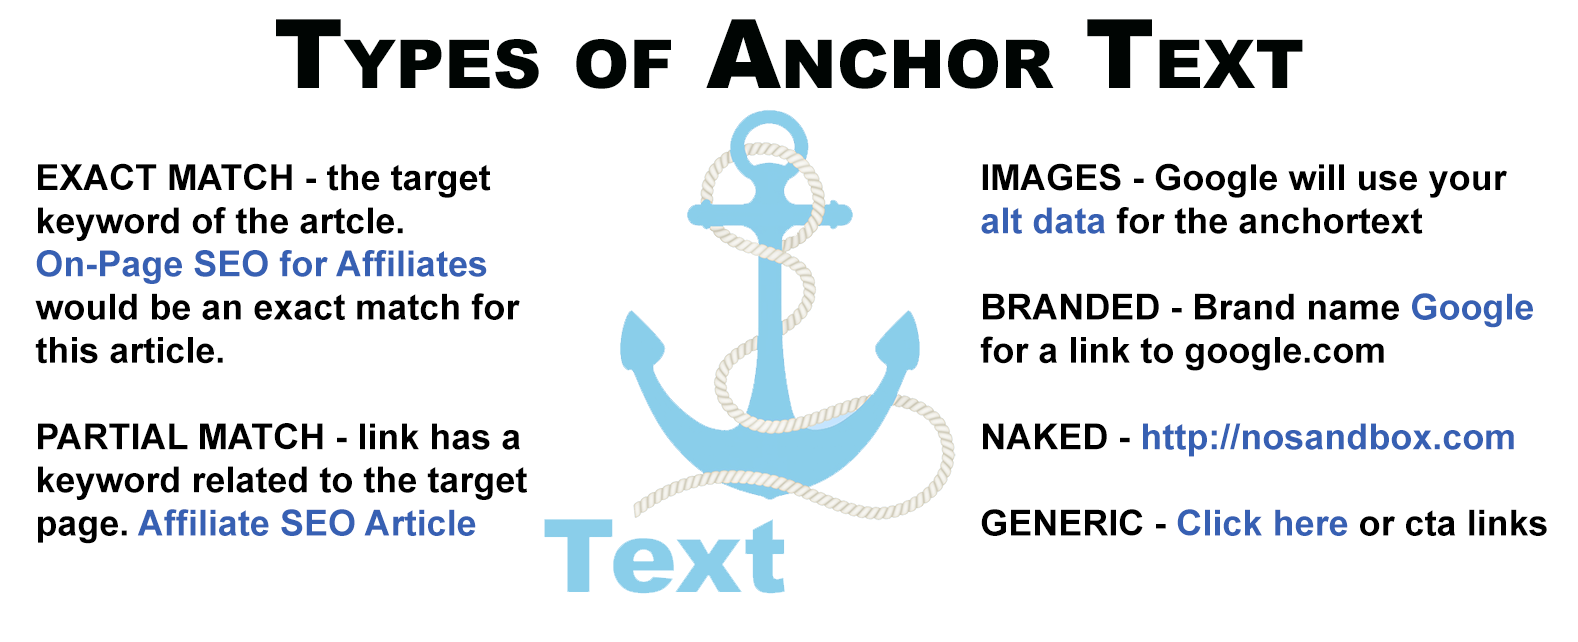 Anchor Text Types